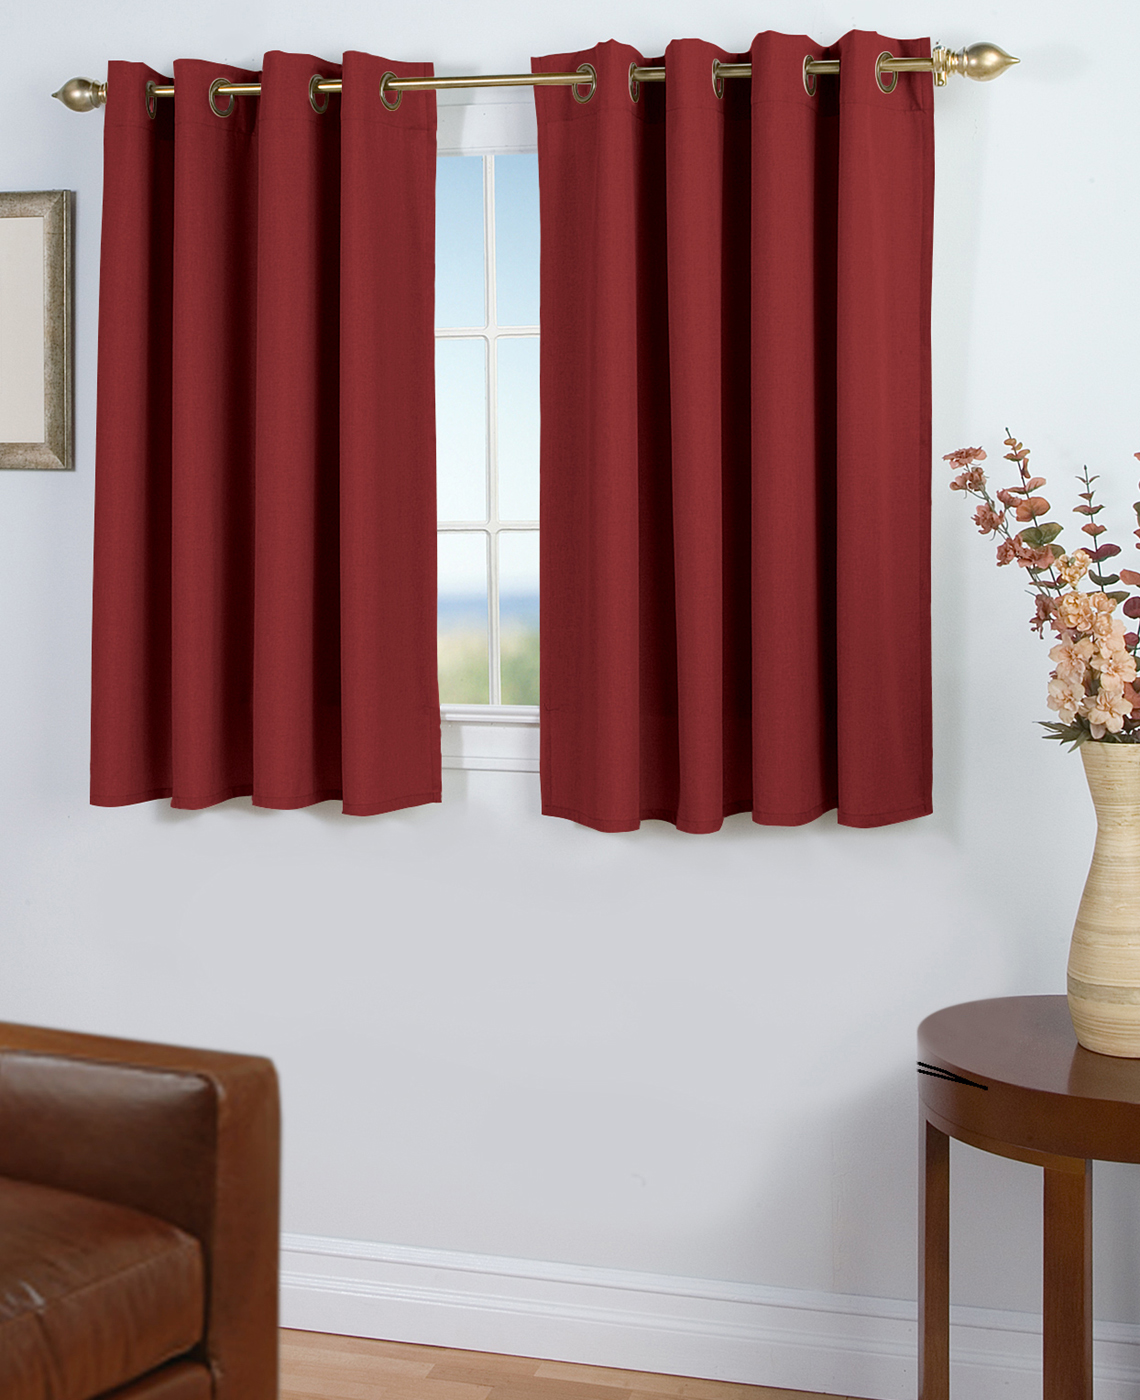 52 Inch Length Curtains